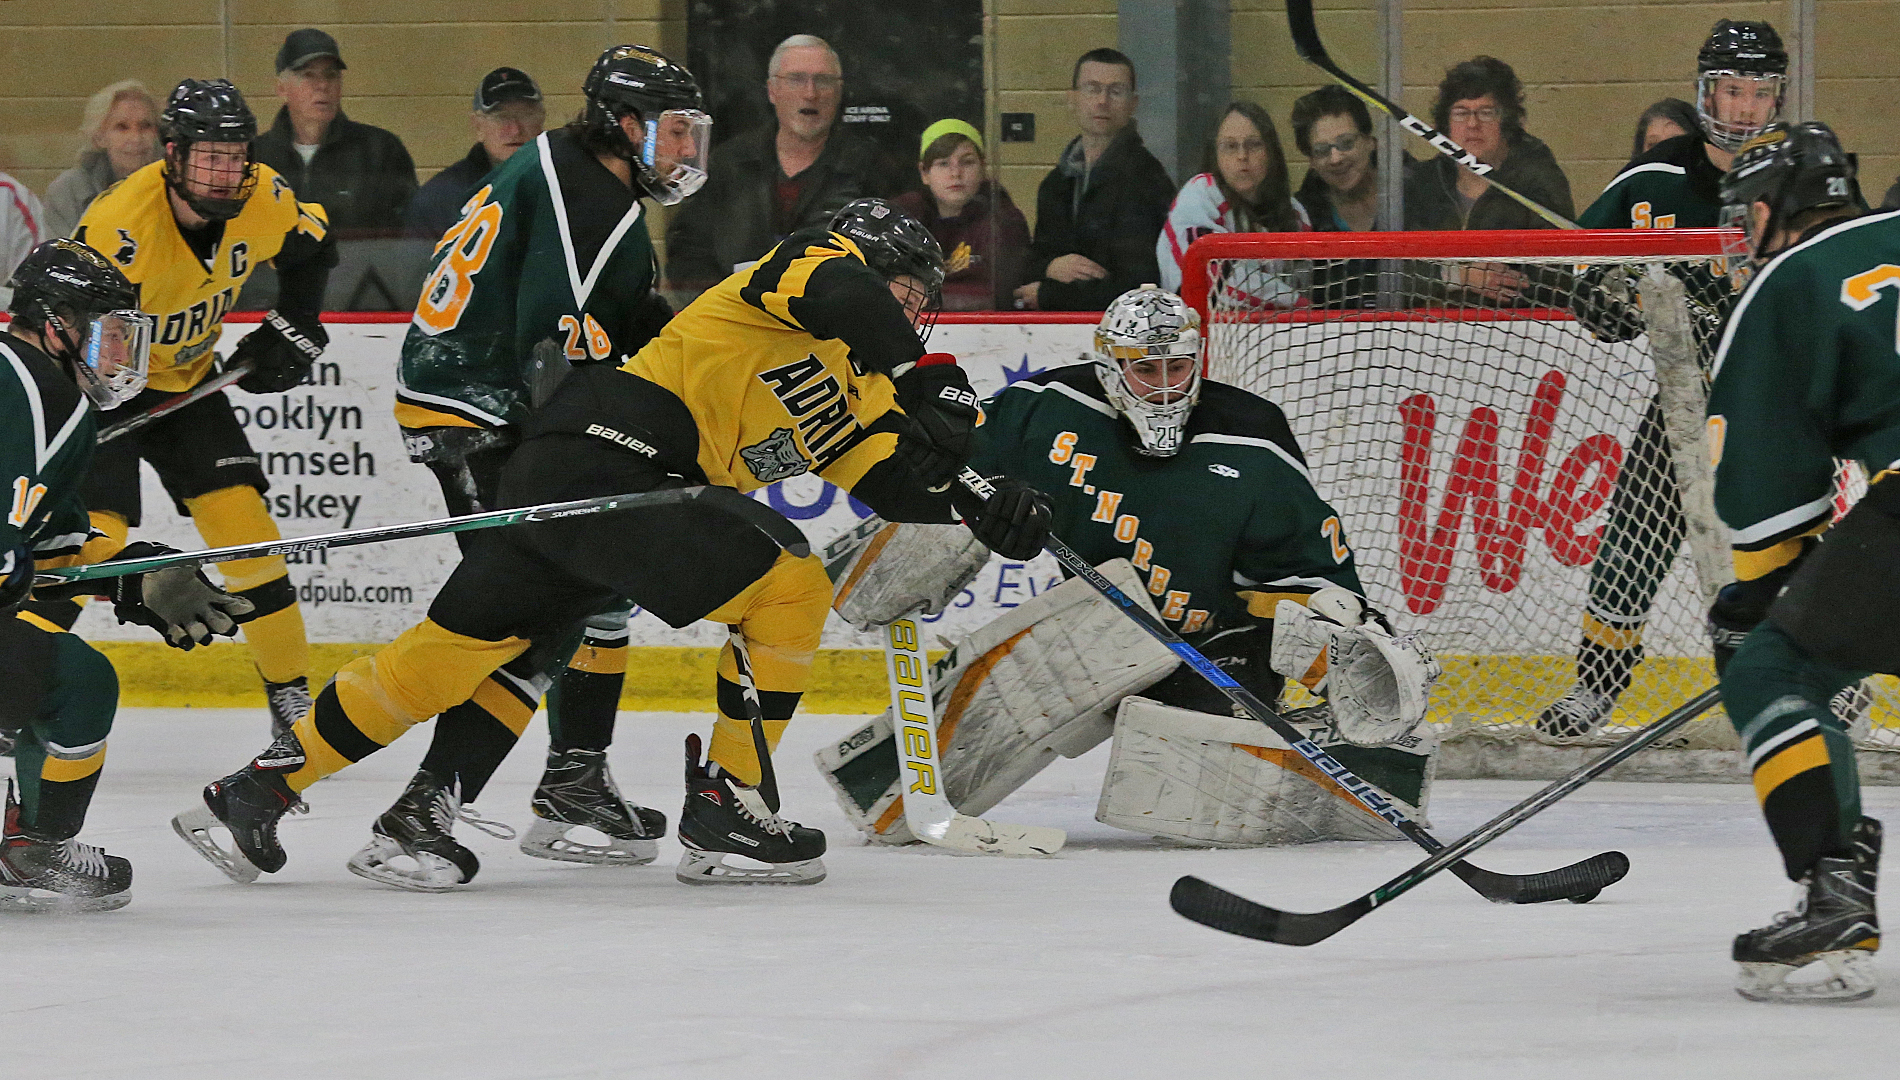 Players battle for positioning in front of the SNC net on Saturday. (Action photo by Mike Dickie)